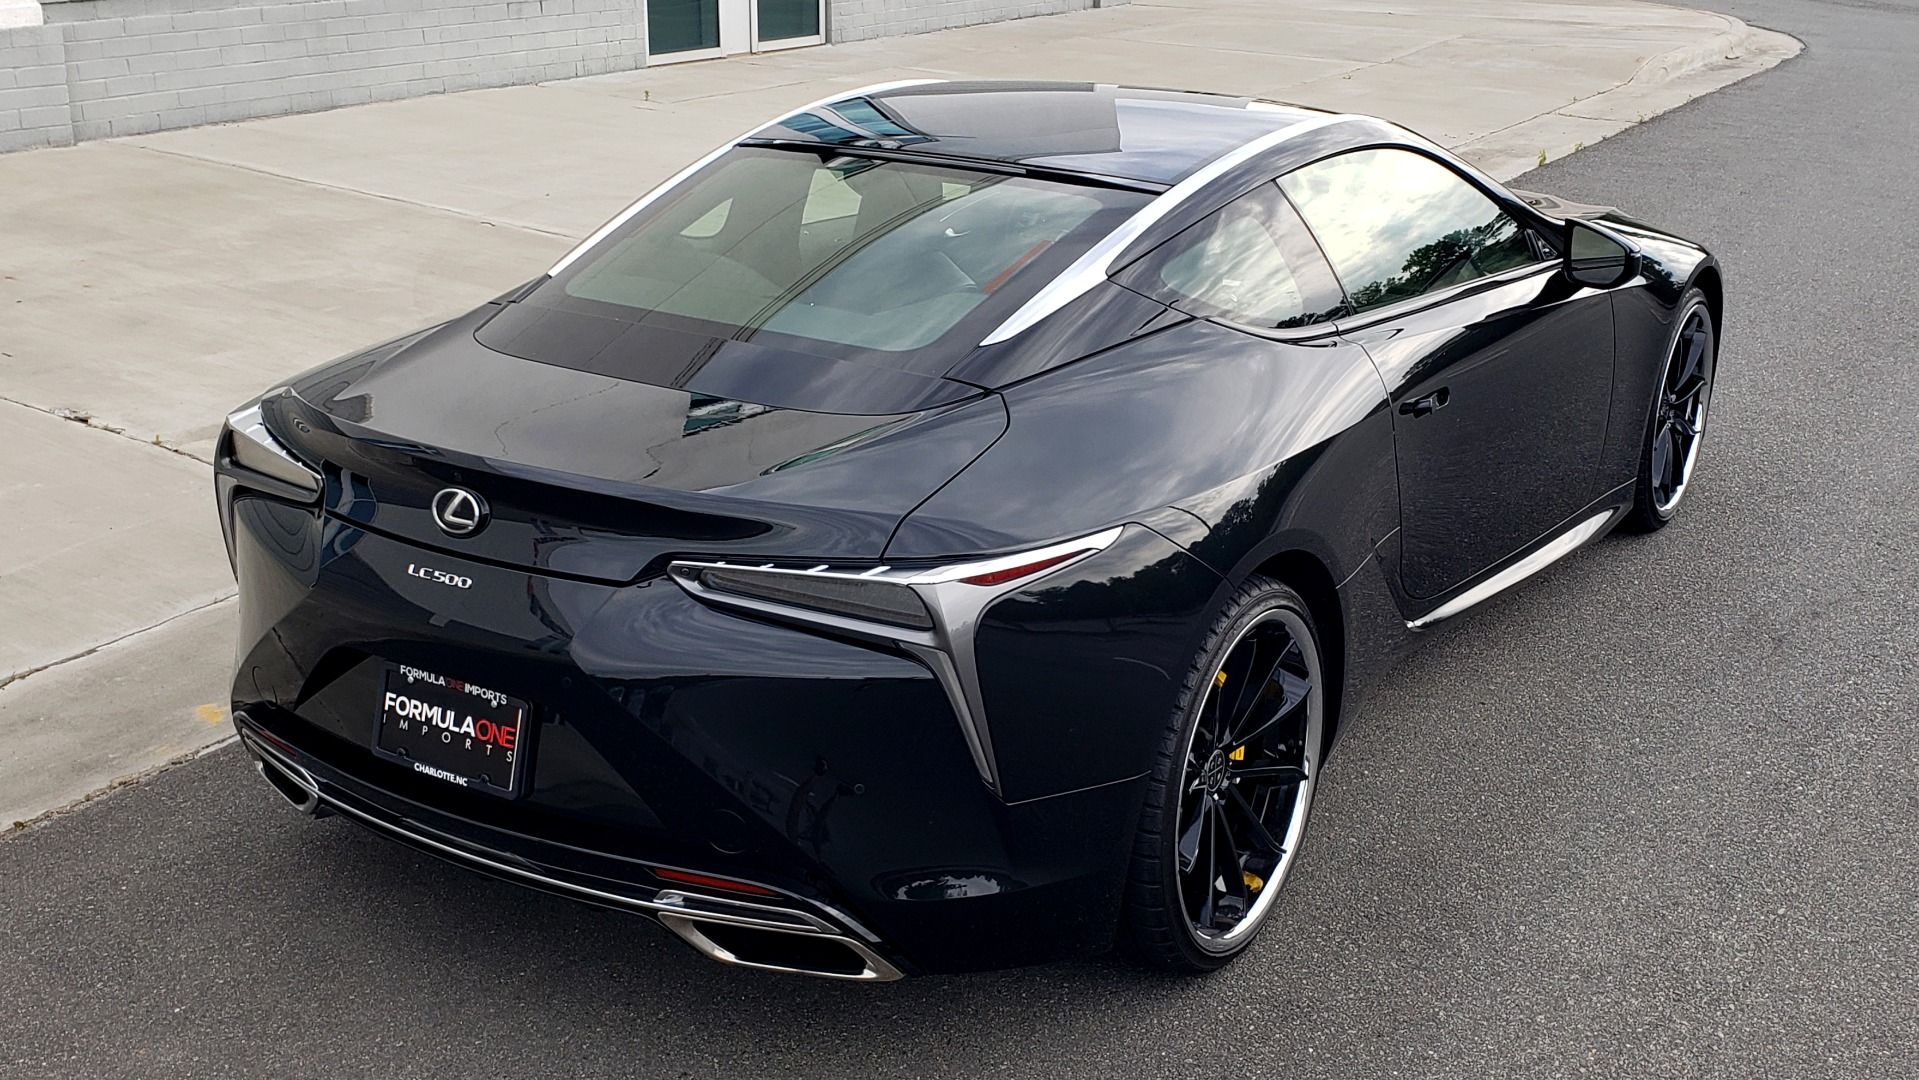 Used 2018 Lexus LC 500 COUPE / 5.0L V8 (471HP) / 10-SPD AUTO / HUD / SUNROOF / REARVIEW for sale Sold at Formula Imports in Charlotte NC 28227 4